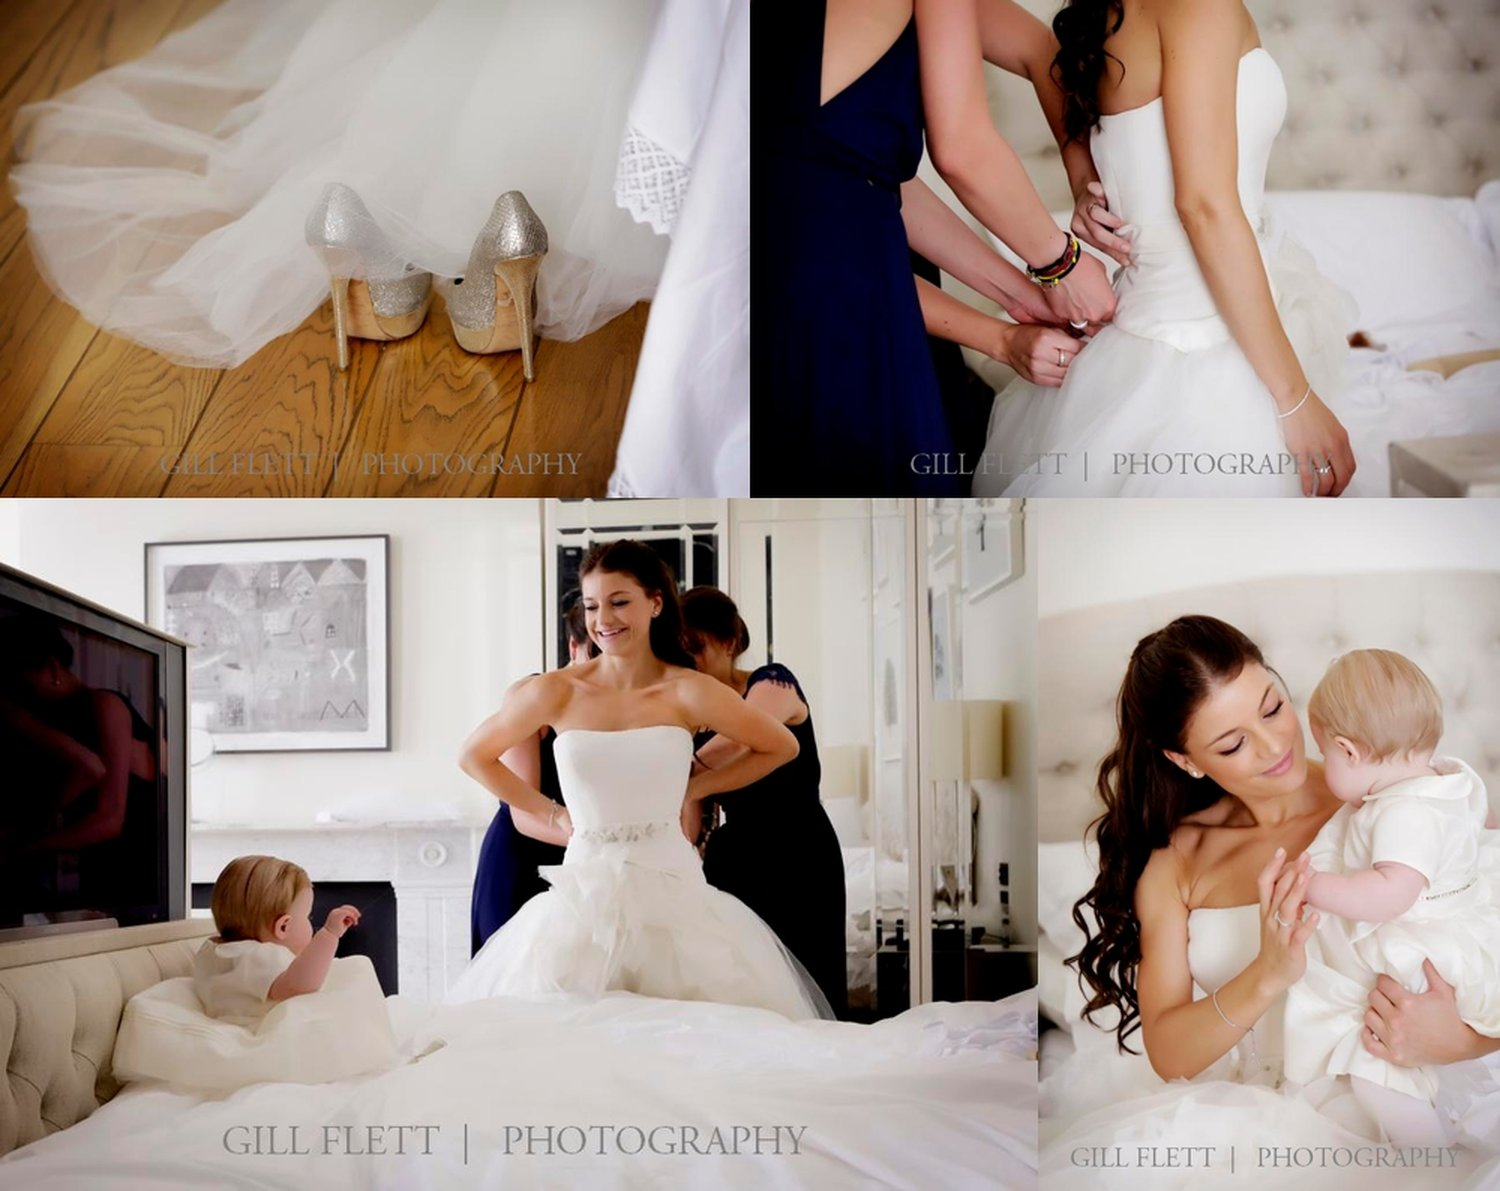 dressing-bride-grove-wedding-gillflett-photo_img_0006.jpg